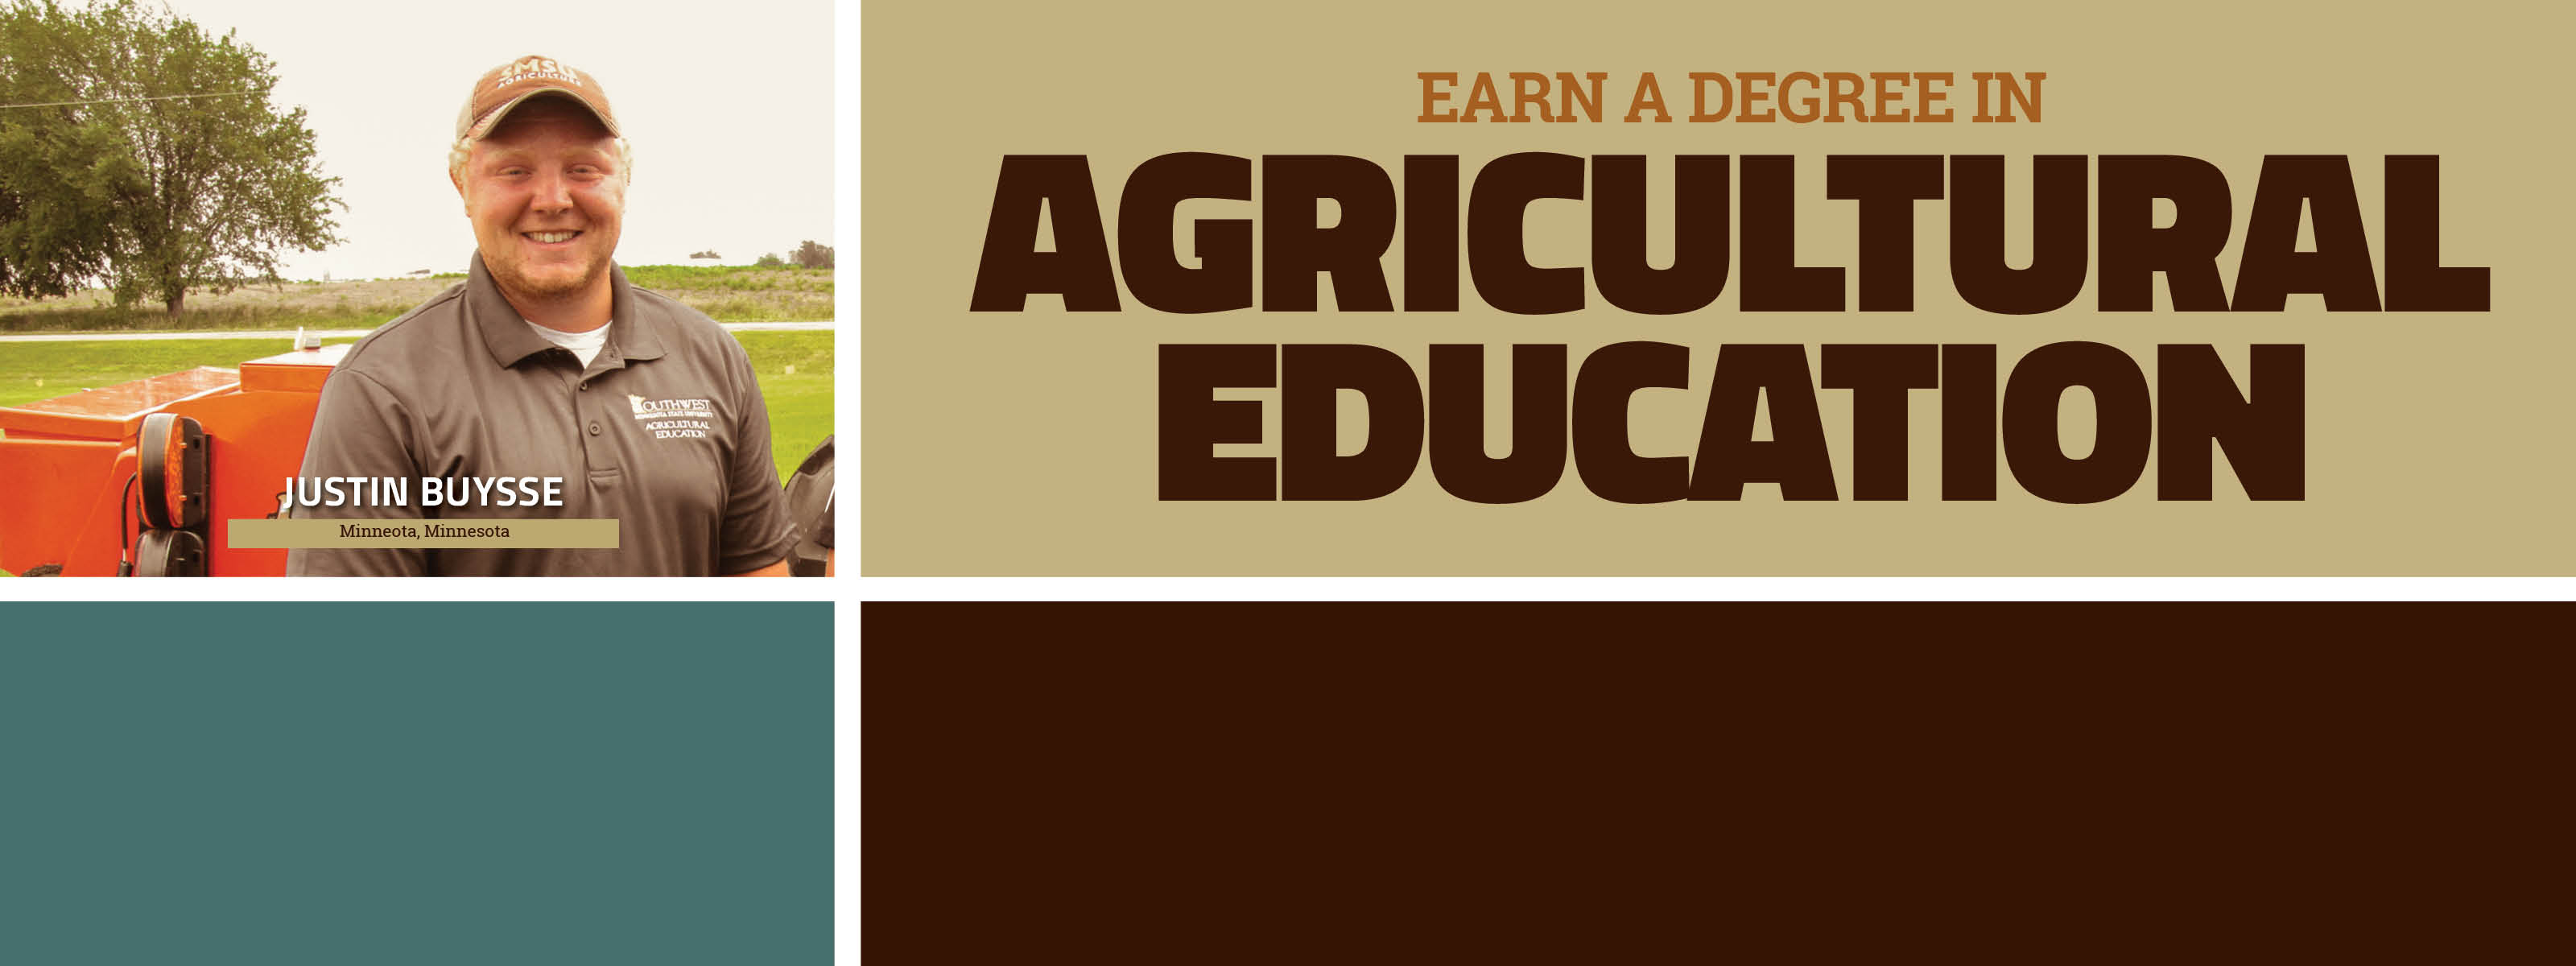 Earn A Degree In Agricultural Education - Discover. Engage. Lead.